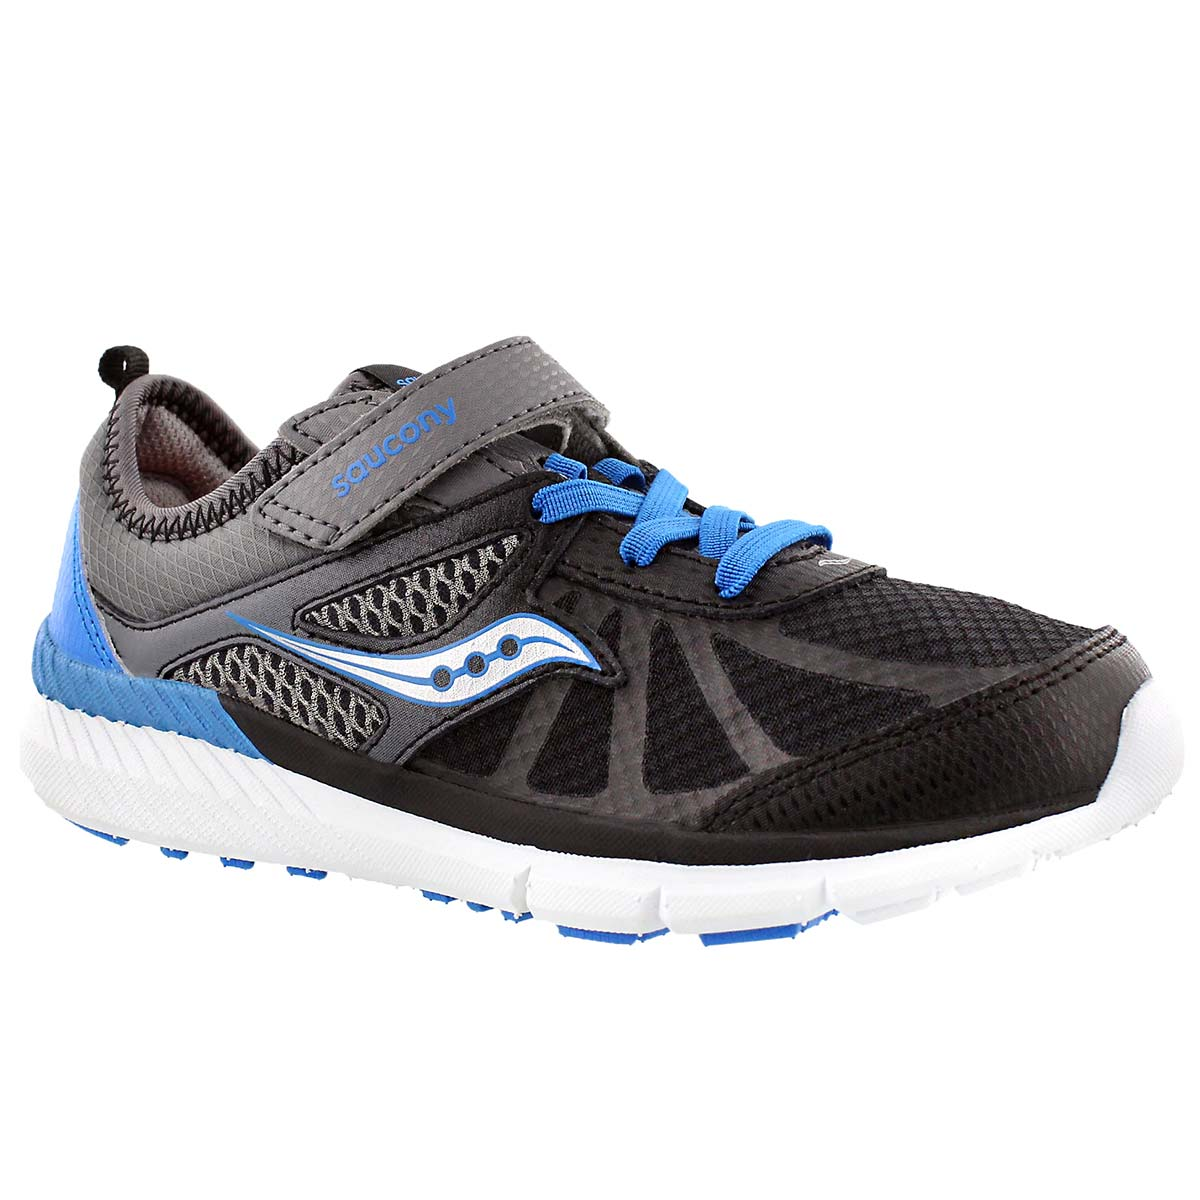 Boys'  VOLT grey/black/blue running shoes